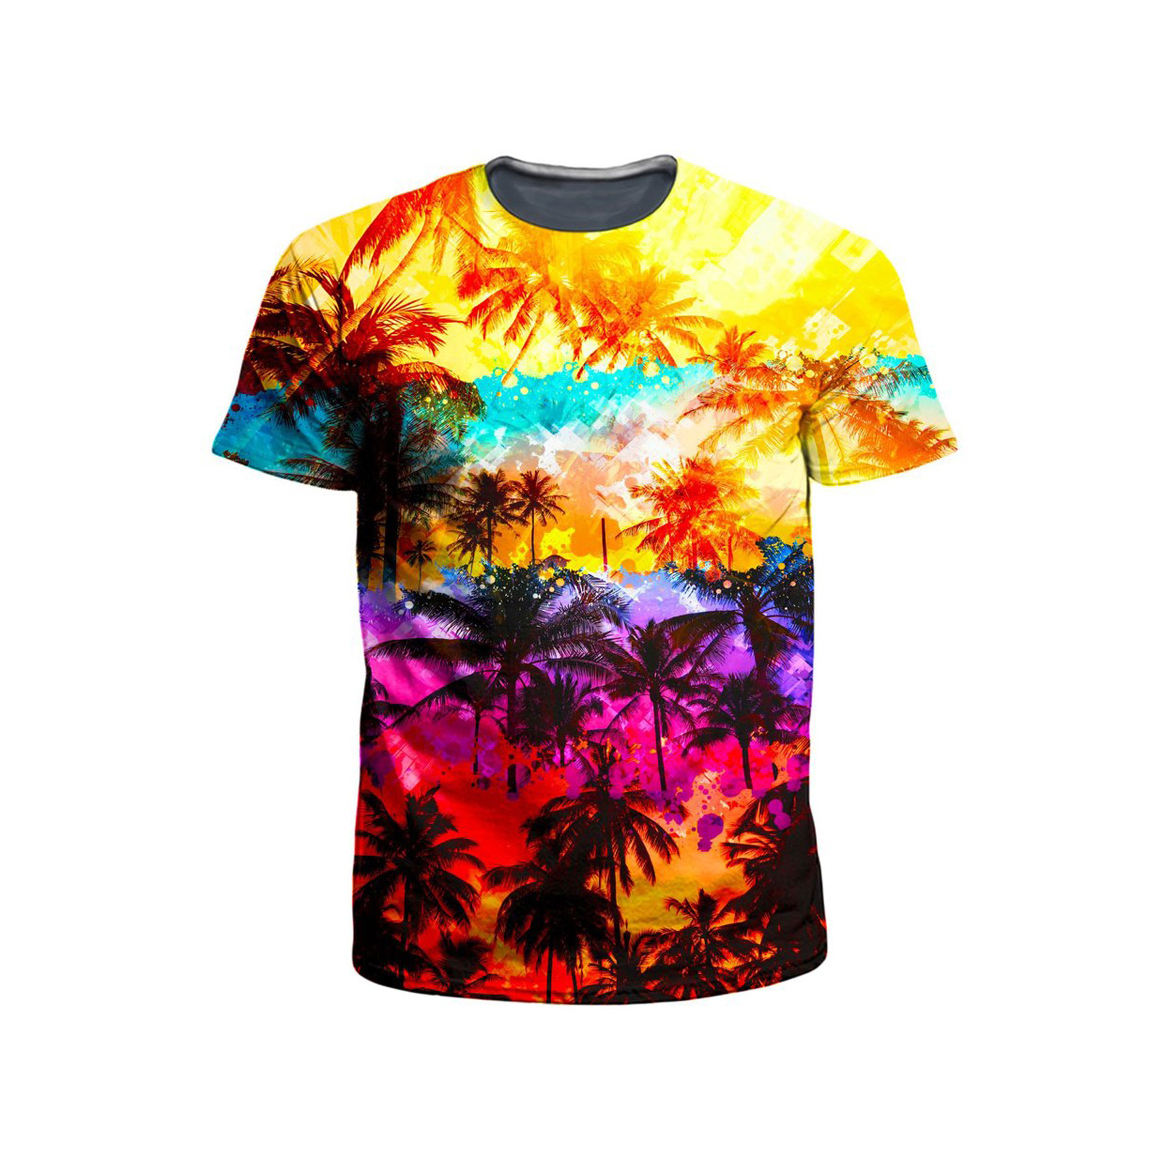 Direct factory high quality new model sublimation shirts less price